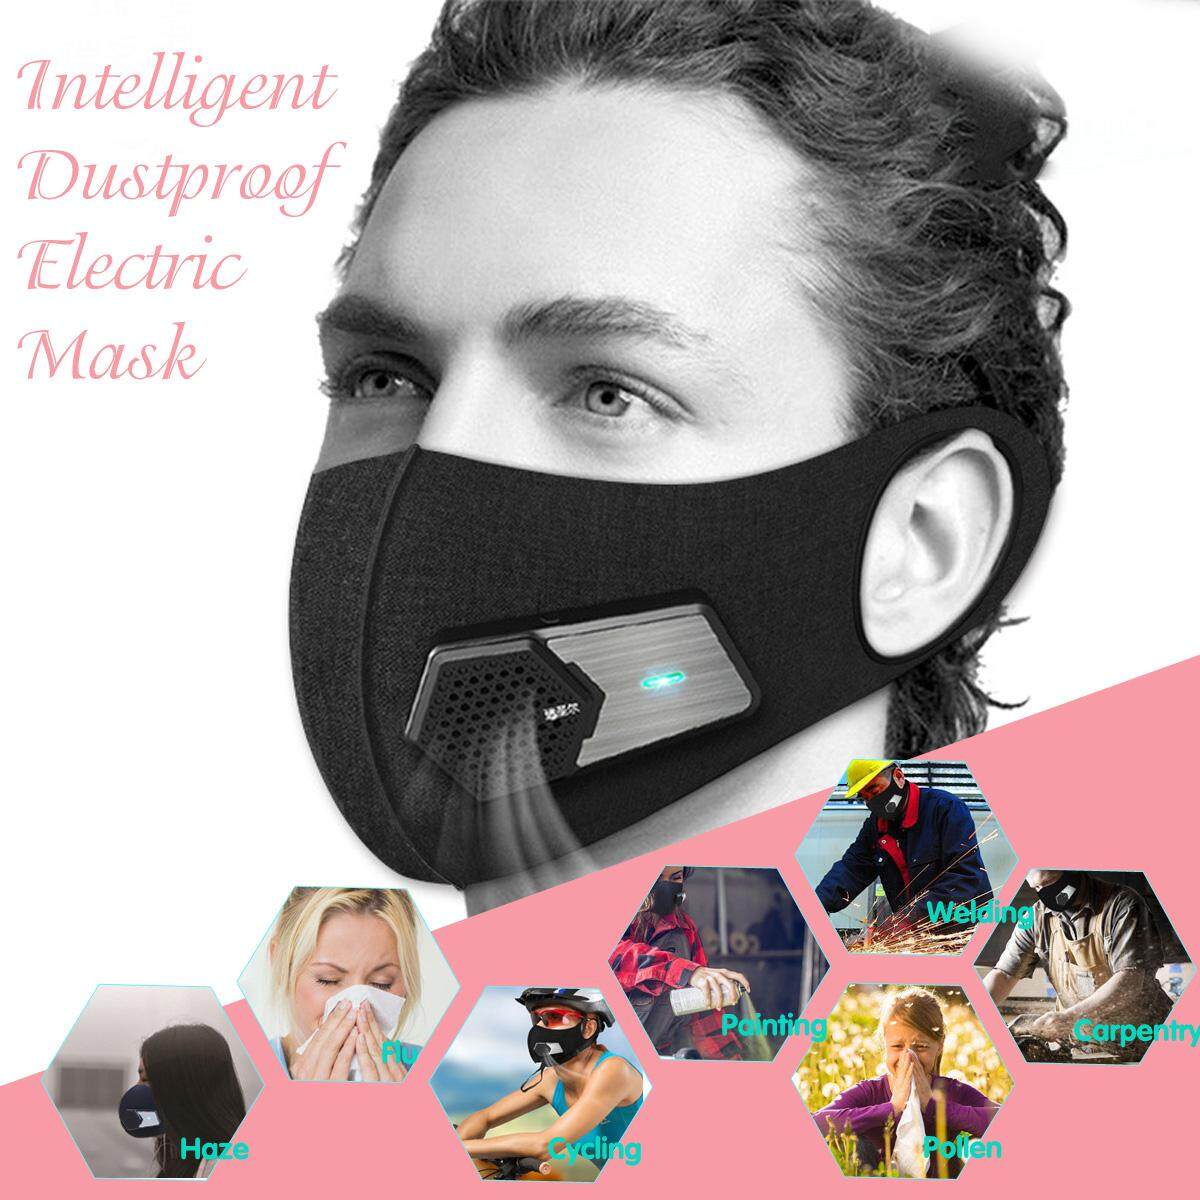 N95 Anti-dust Air Mask Smog PM2.5 Purifier Filter Rechargable Respirator Functions Anti-haze,Formaldehyde, Dust, Pollen, Electric, Air Supply